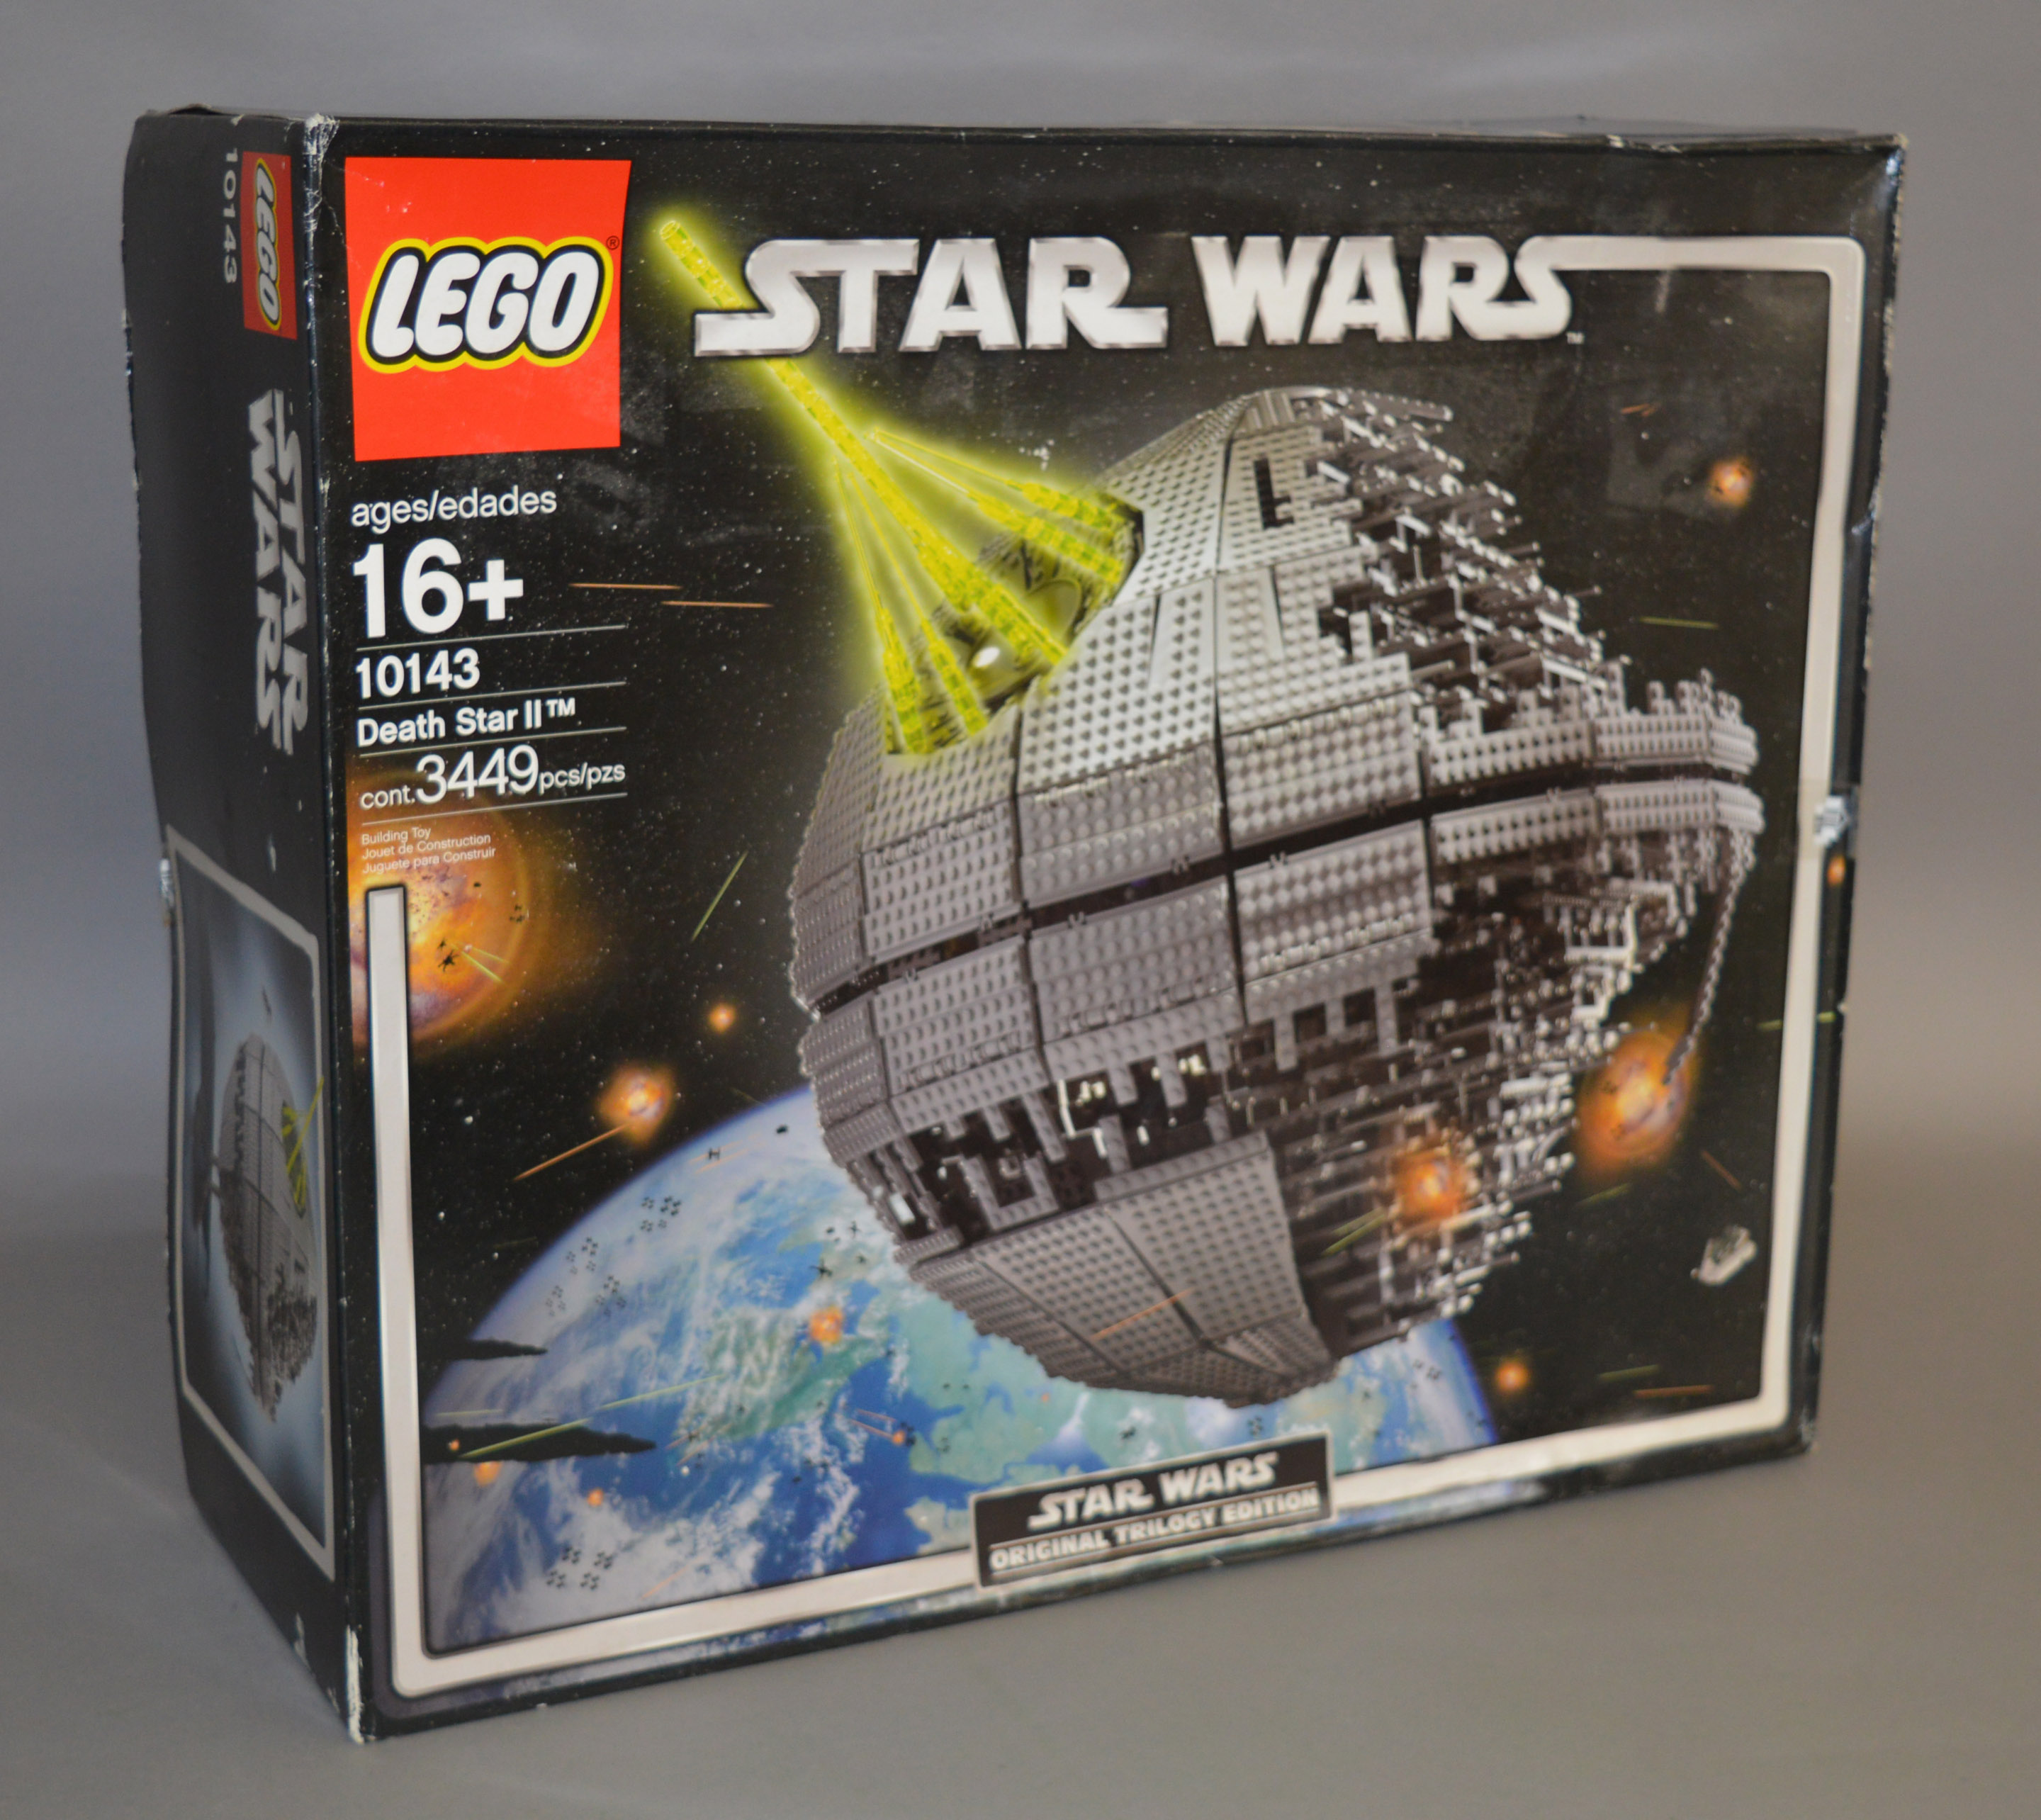 Lot 32 - Lego Star Wars 10143 'Death Star II', in G but somewhat dusty box with some undulation.